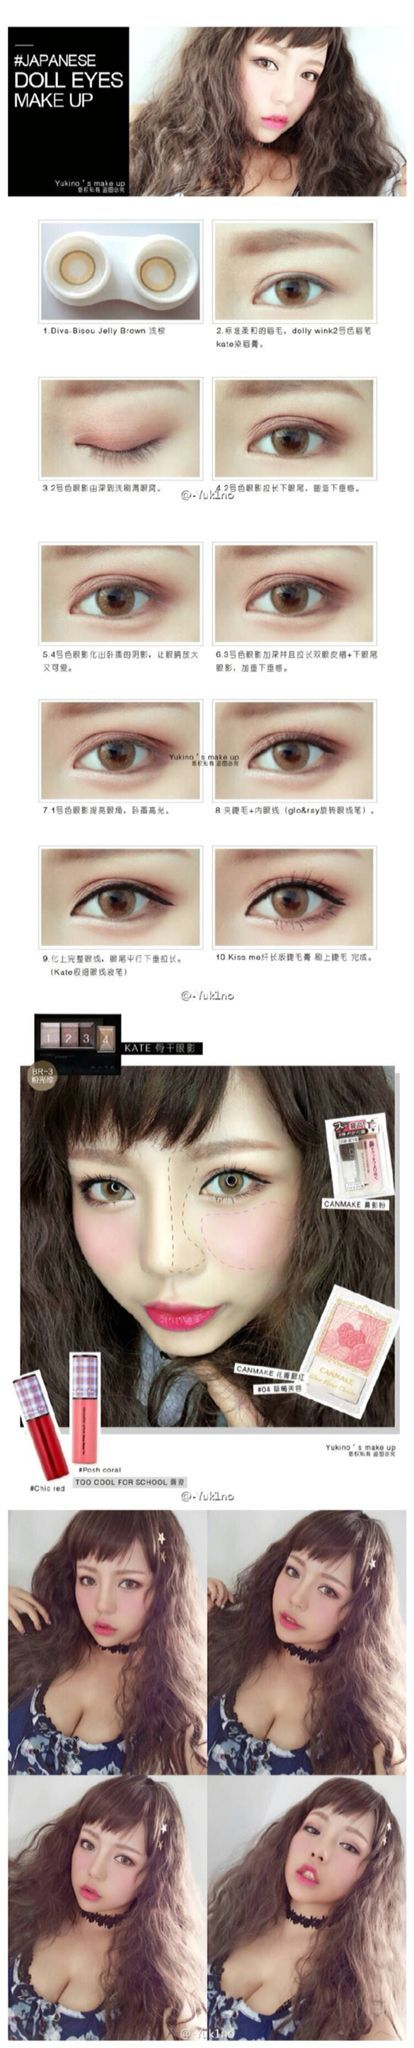 Japanese style eye make up(Best Eyeliner Korean) #Japanesemakeup